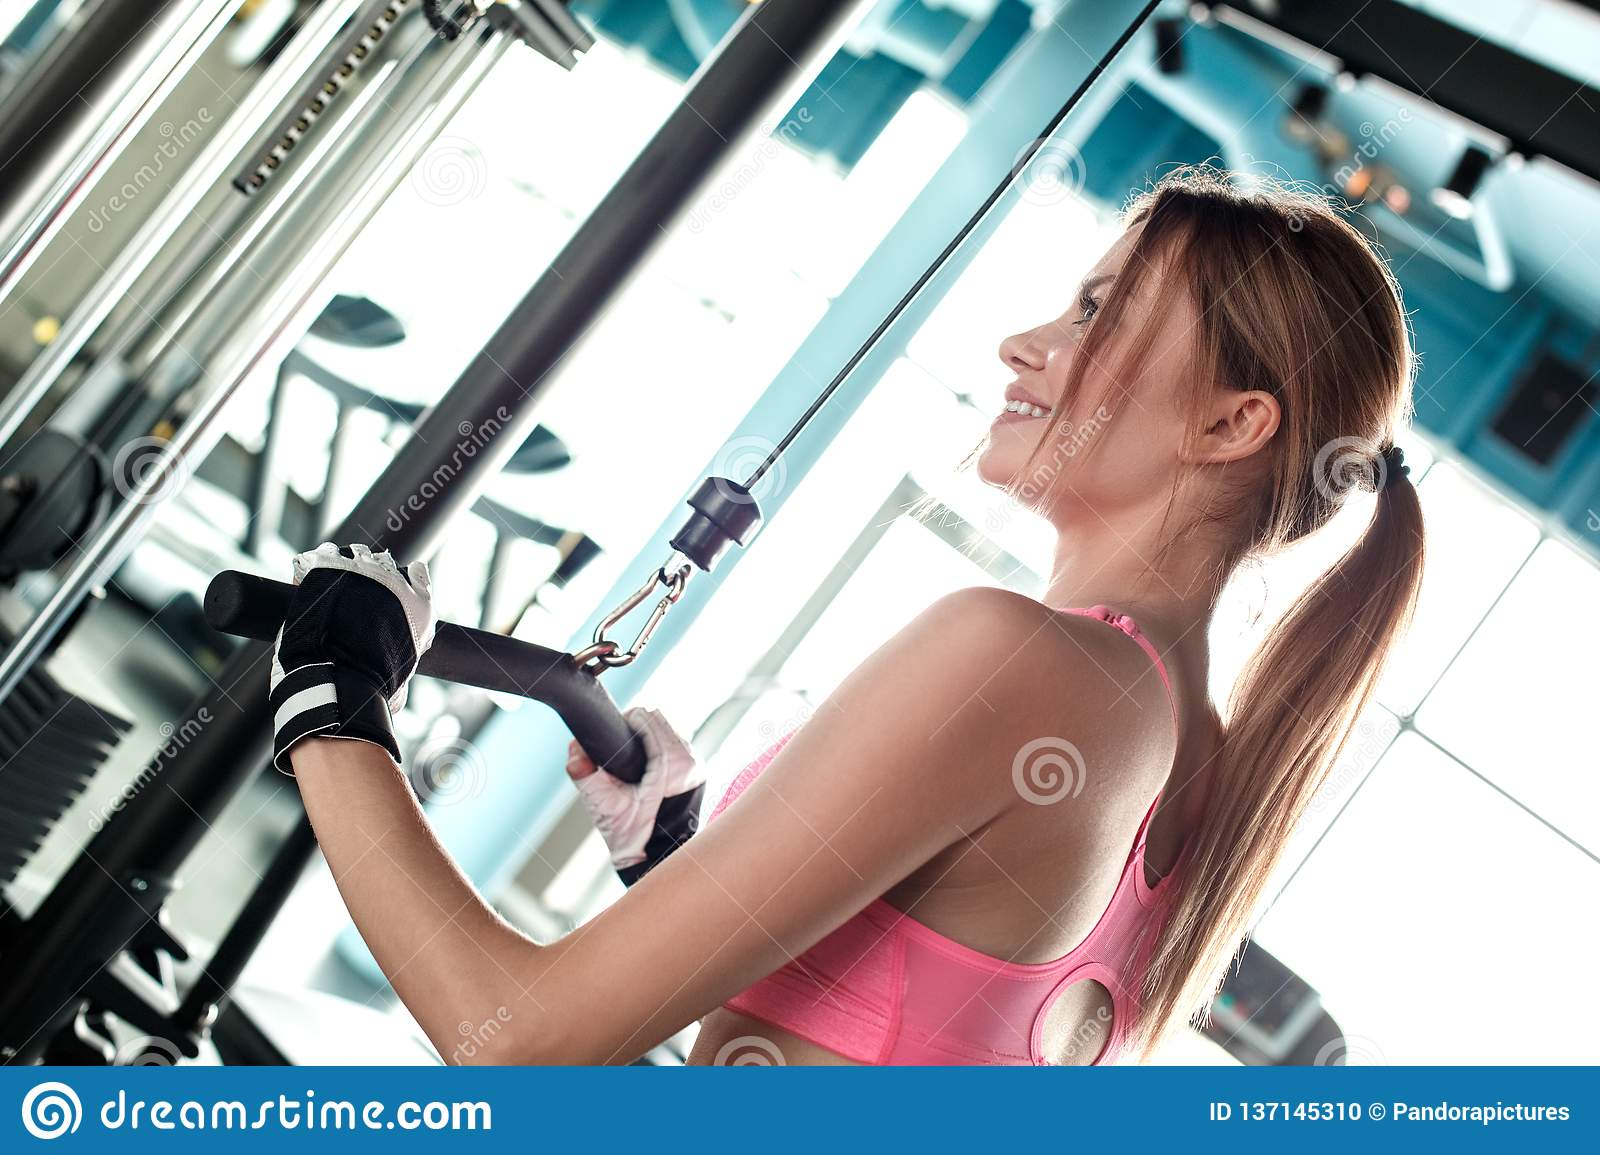 Young girl in sport gloves in gym healthy lifestyle exercising on cable machine holding bar looking aside cheerful back